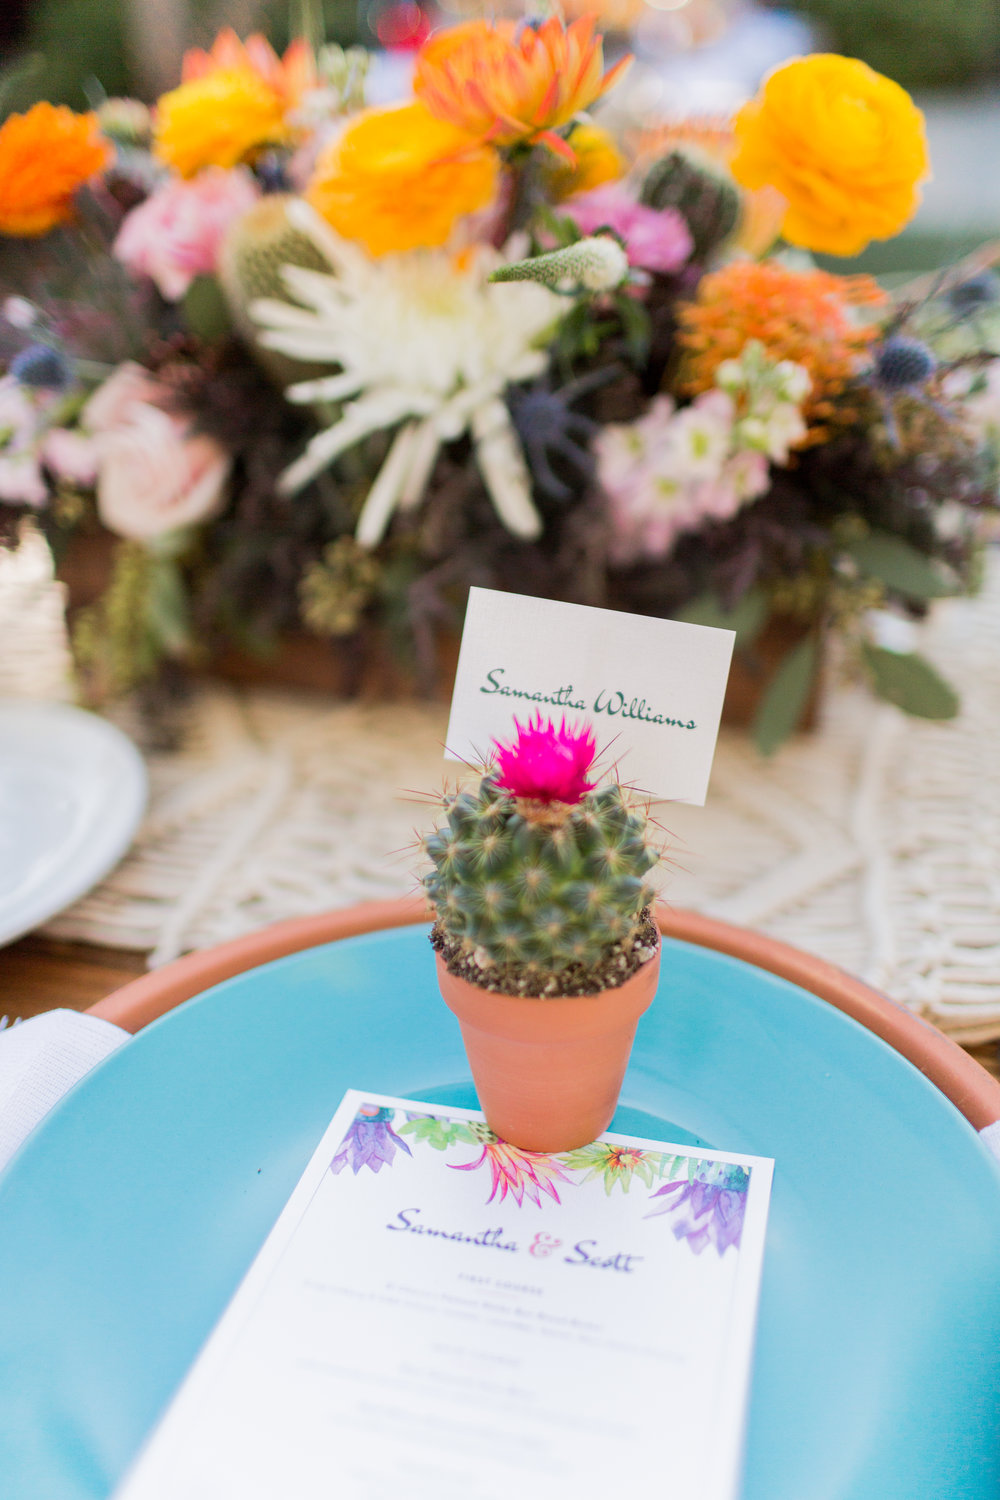 Cacti & Succulents - $5 - These sweet potted cacti and succulents come in a 2.5